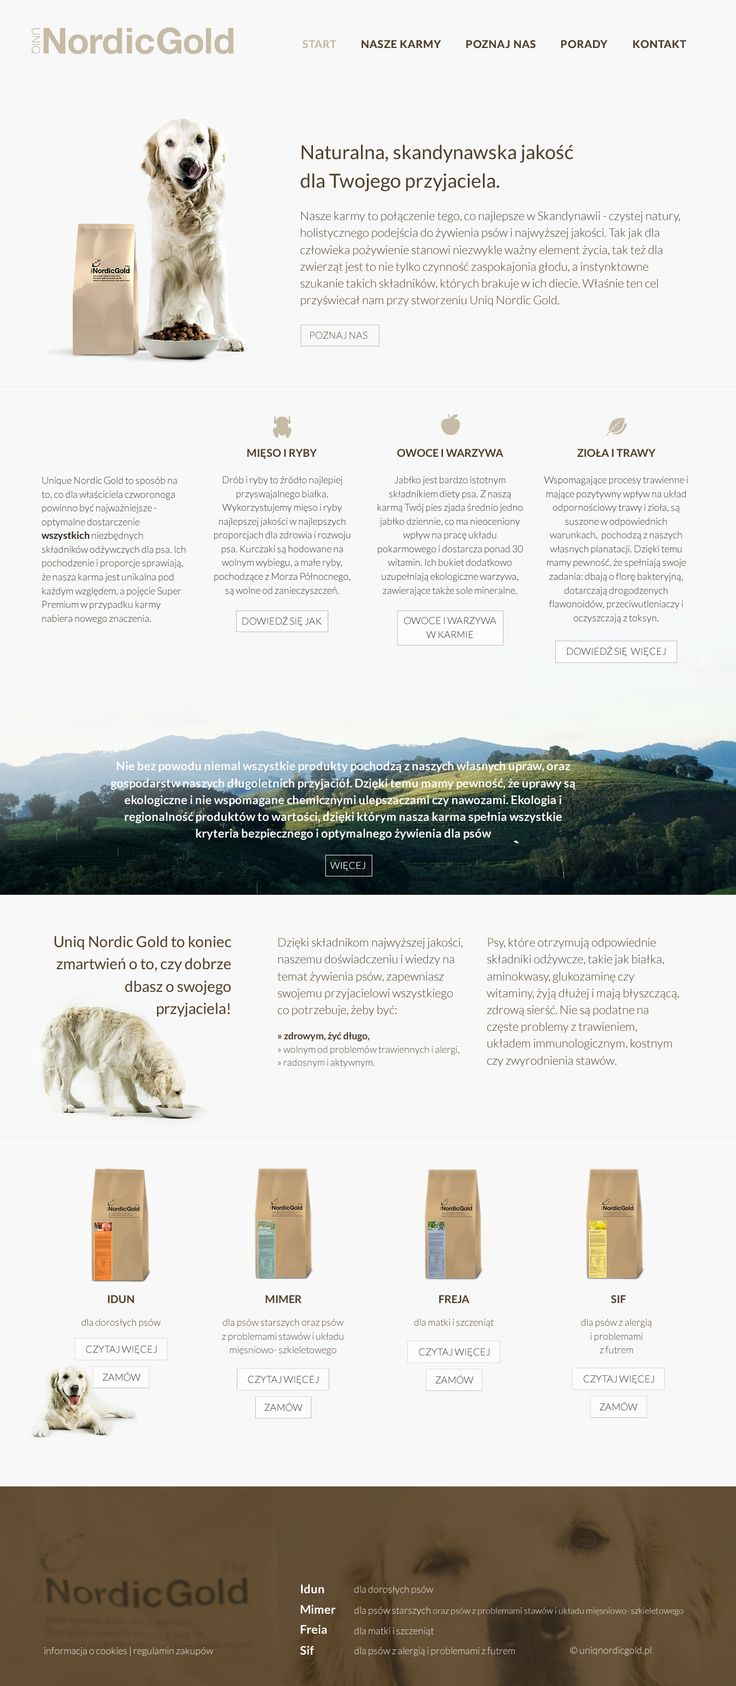 AIAC Agency for UniqNordicGold, new dog food :)  http://uniqnordicgold.pl   http://aiac.pl  #websitedesign #dogfood #dogs #uniqnordicgold #nordicgold #aiac